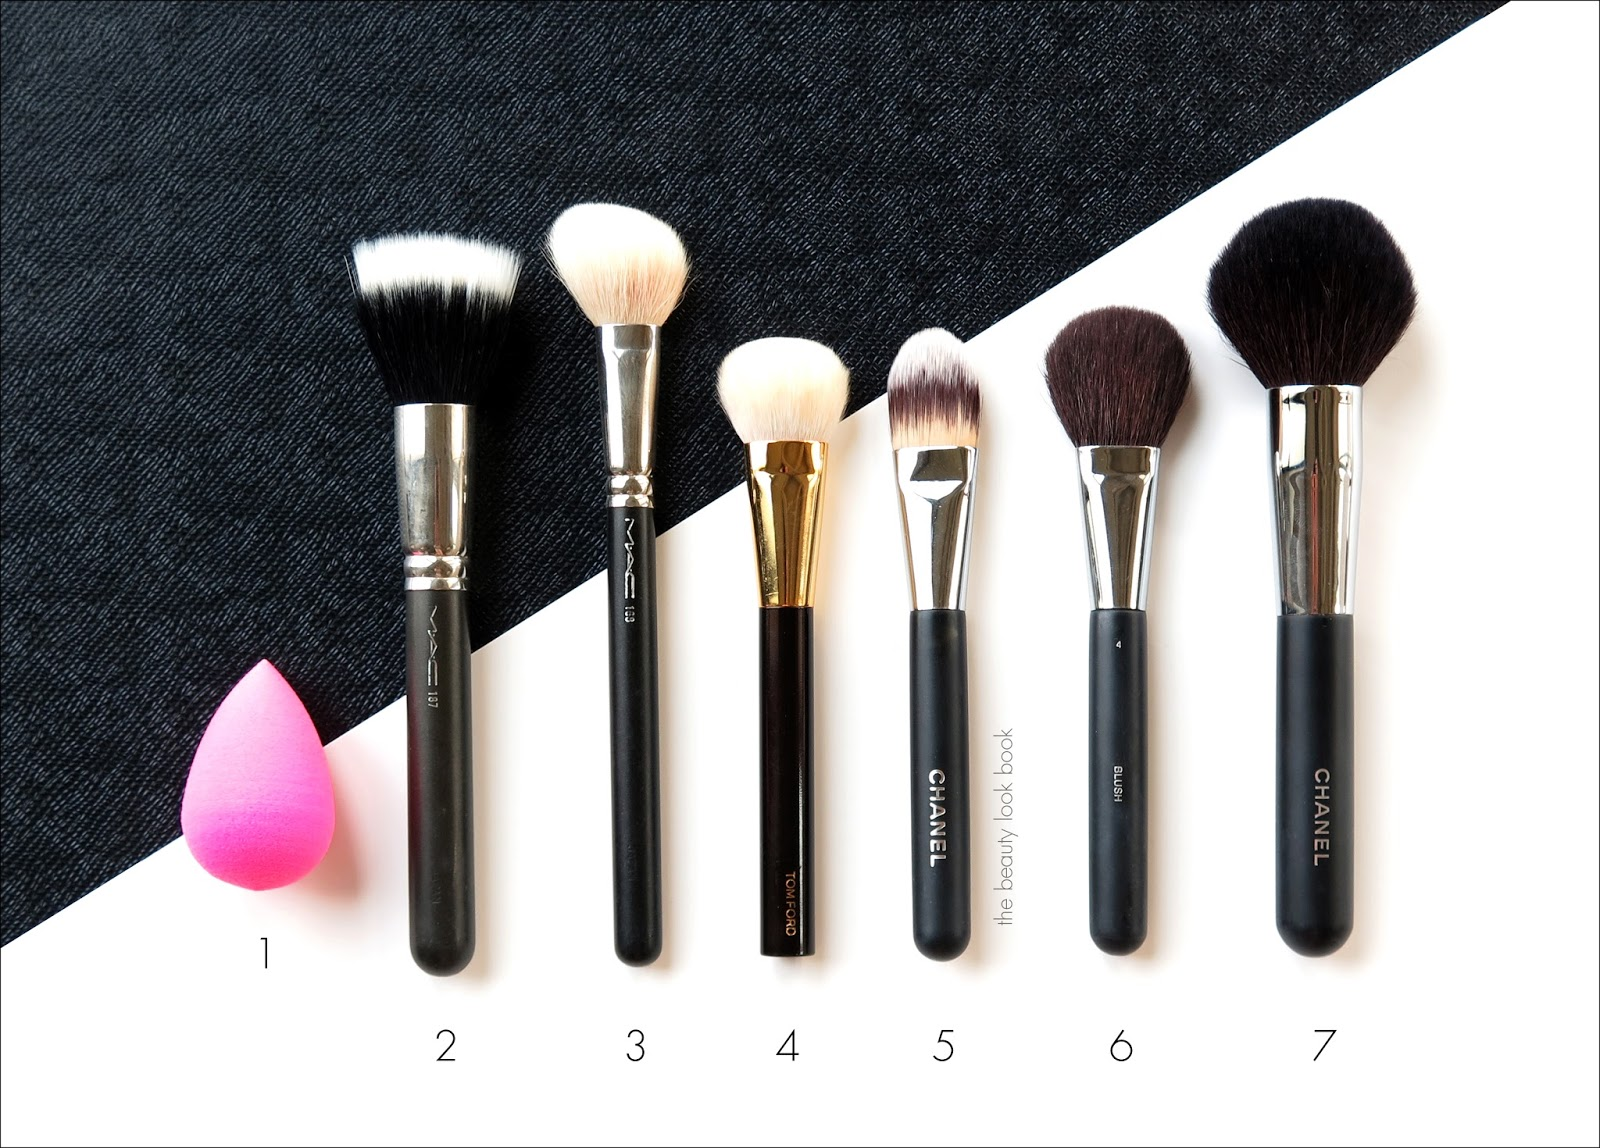 Shop makeup tools for women on sale with wholesale cheap price and fast delivery, and find more womens best makeup tools: makeup brushes, eyeshadow palette, eyelashes & bulk makeup tools online with drop shipping.